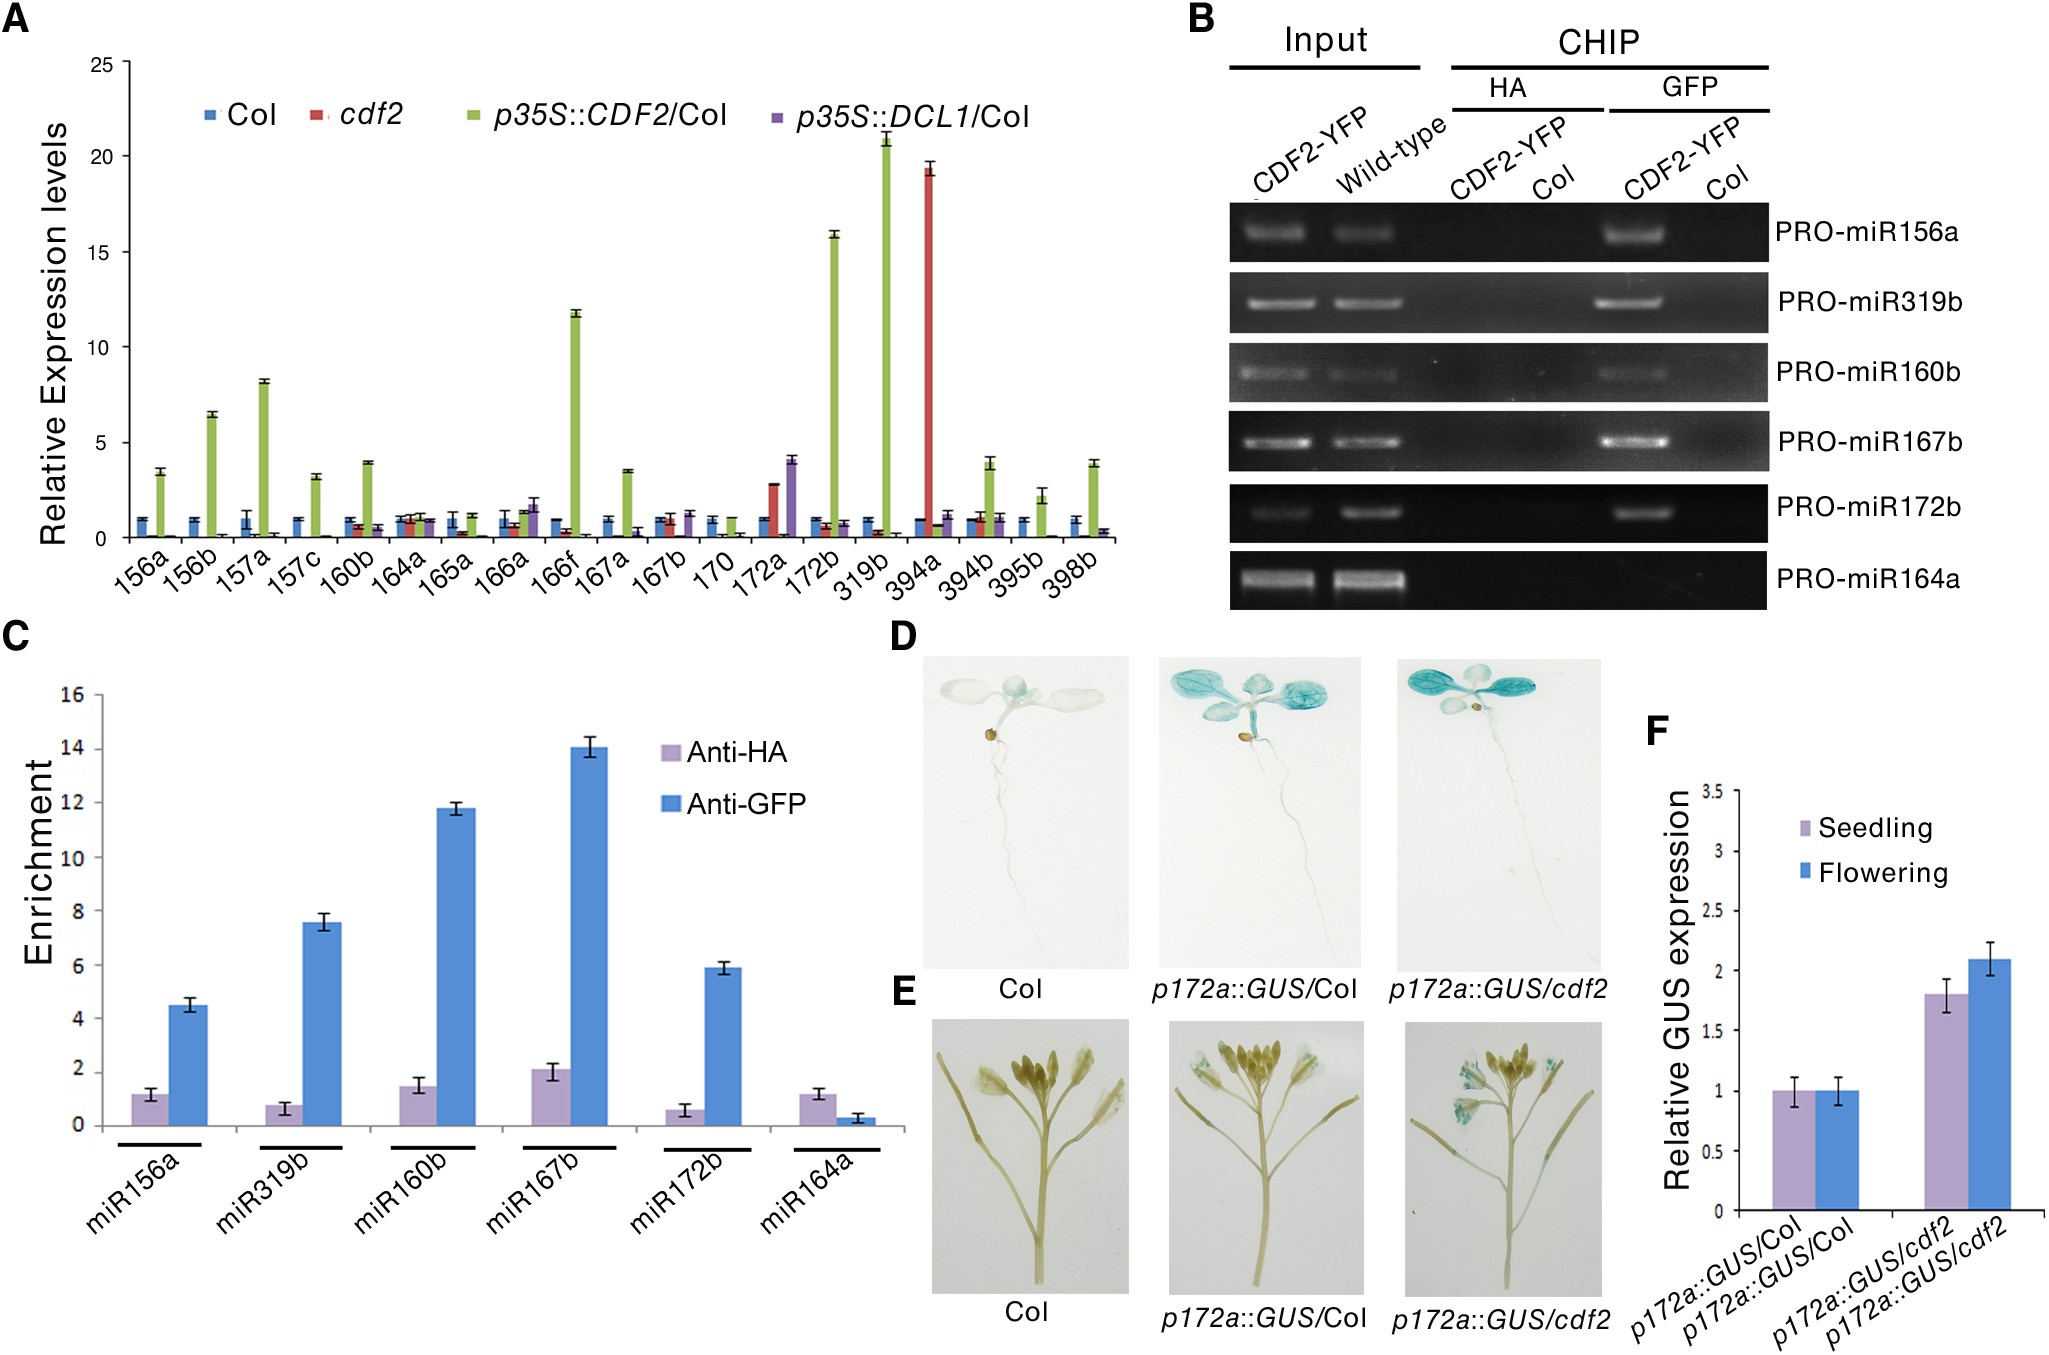 CDF2 acts as a transcription factor for some miRNA genes.